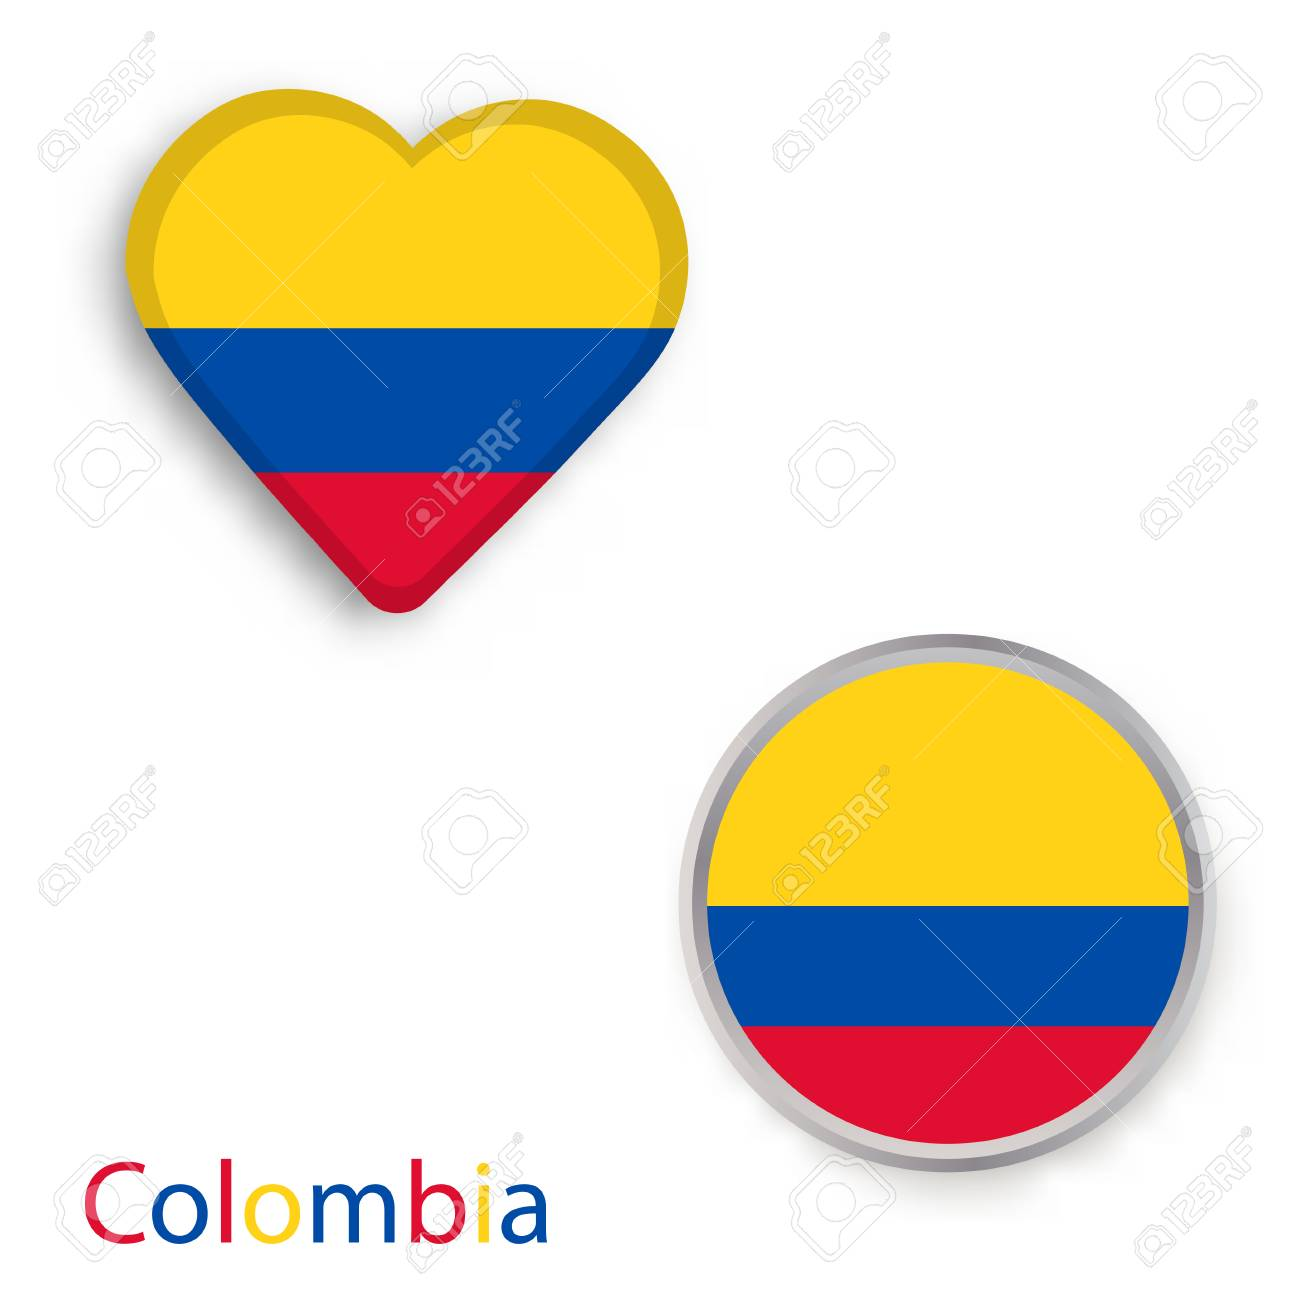 Heart And Circle Symbols With Flag Of Colombia Vector Illustration